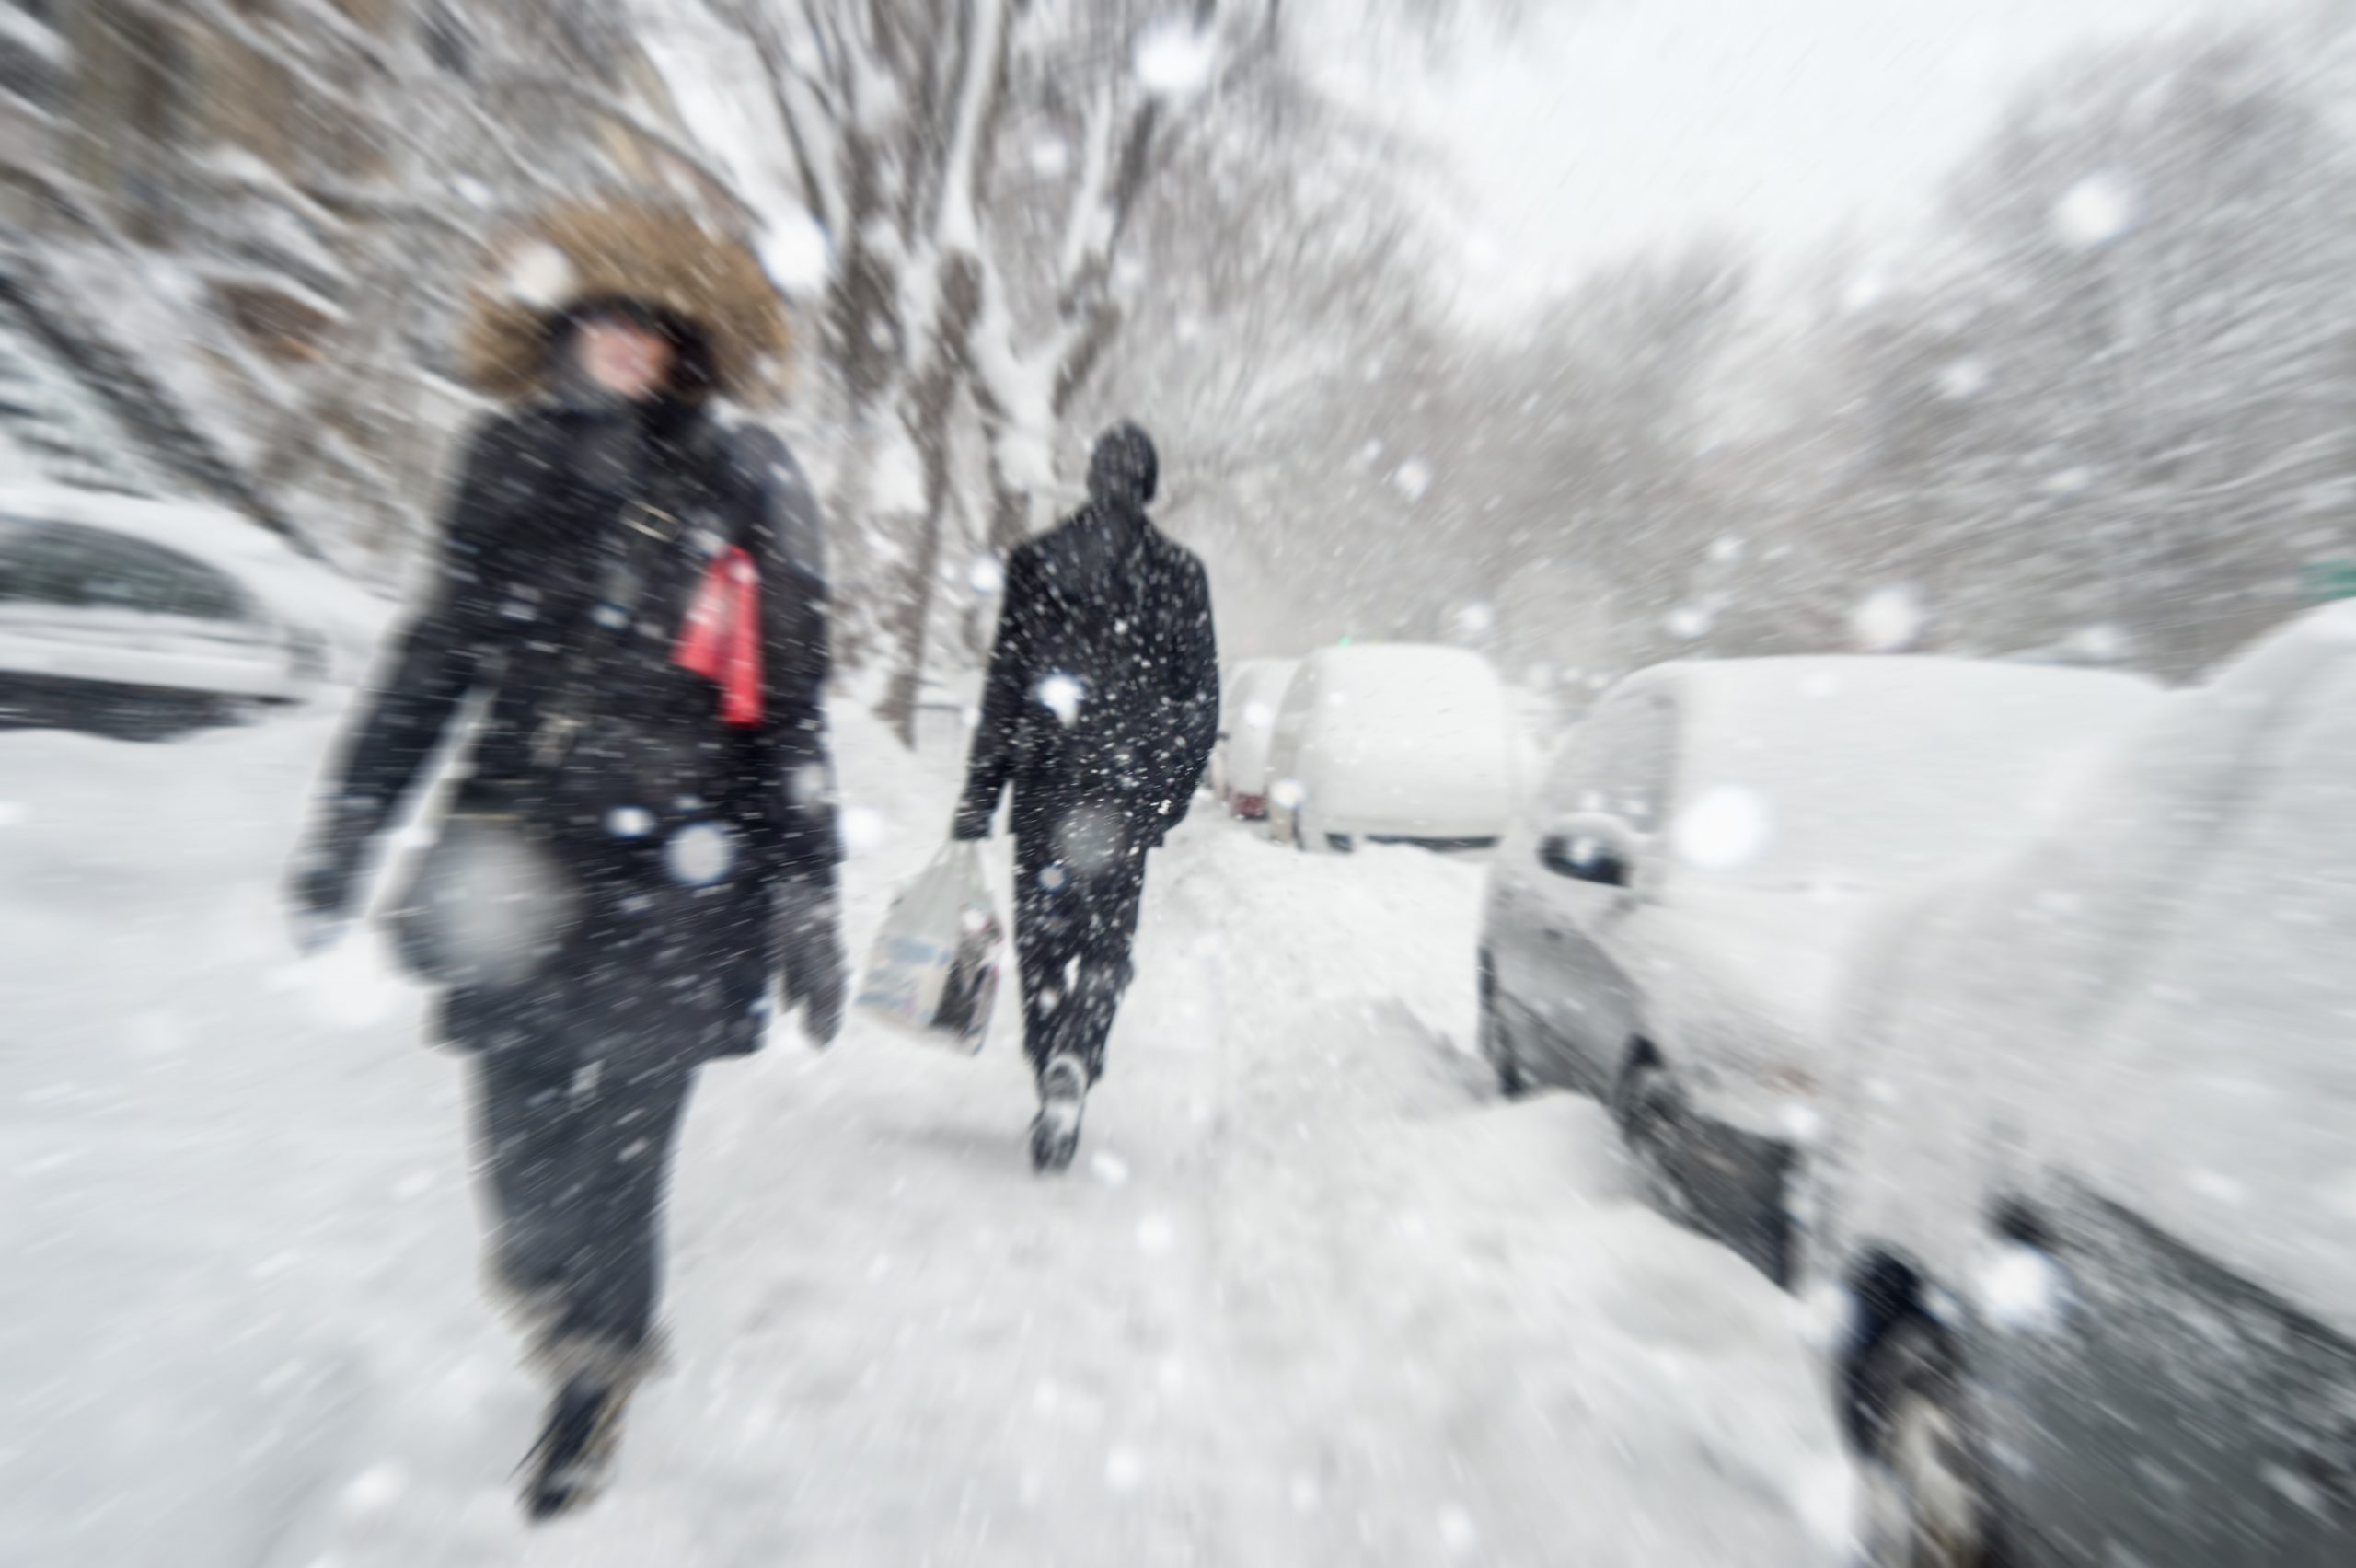 Monday storm could bring foot of snow to mountains